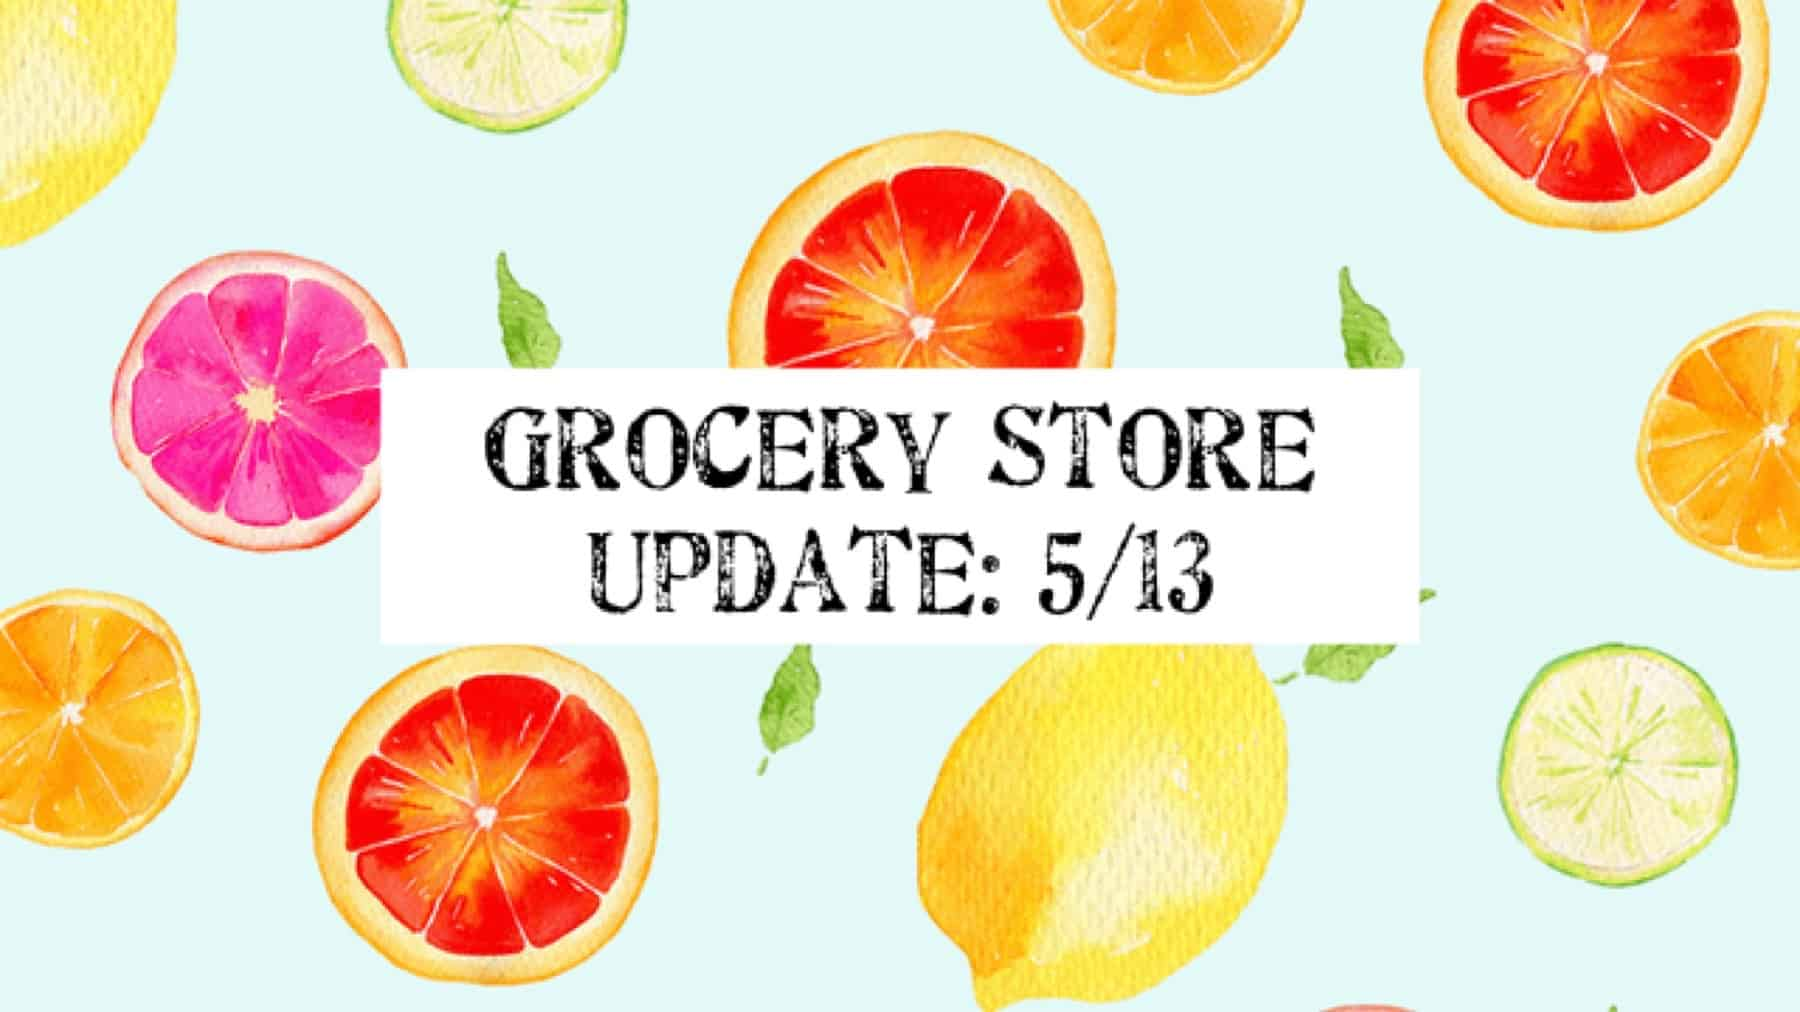 Grocery Store Update Route 1